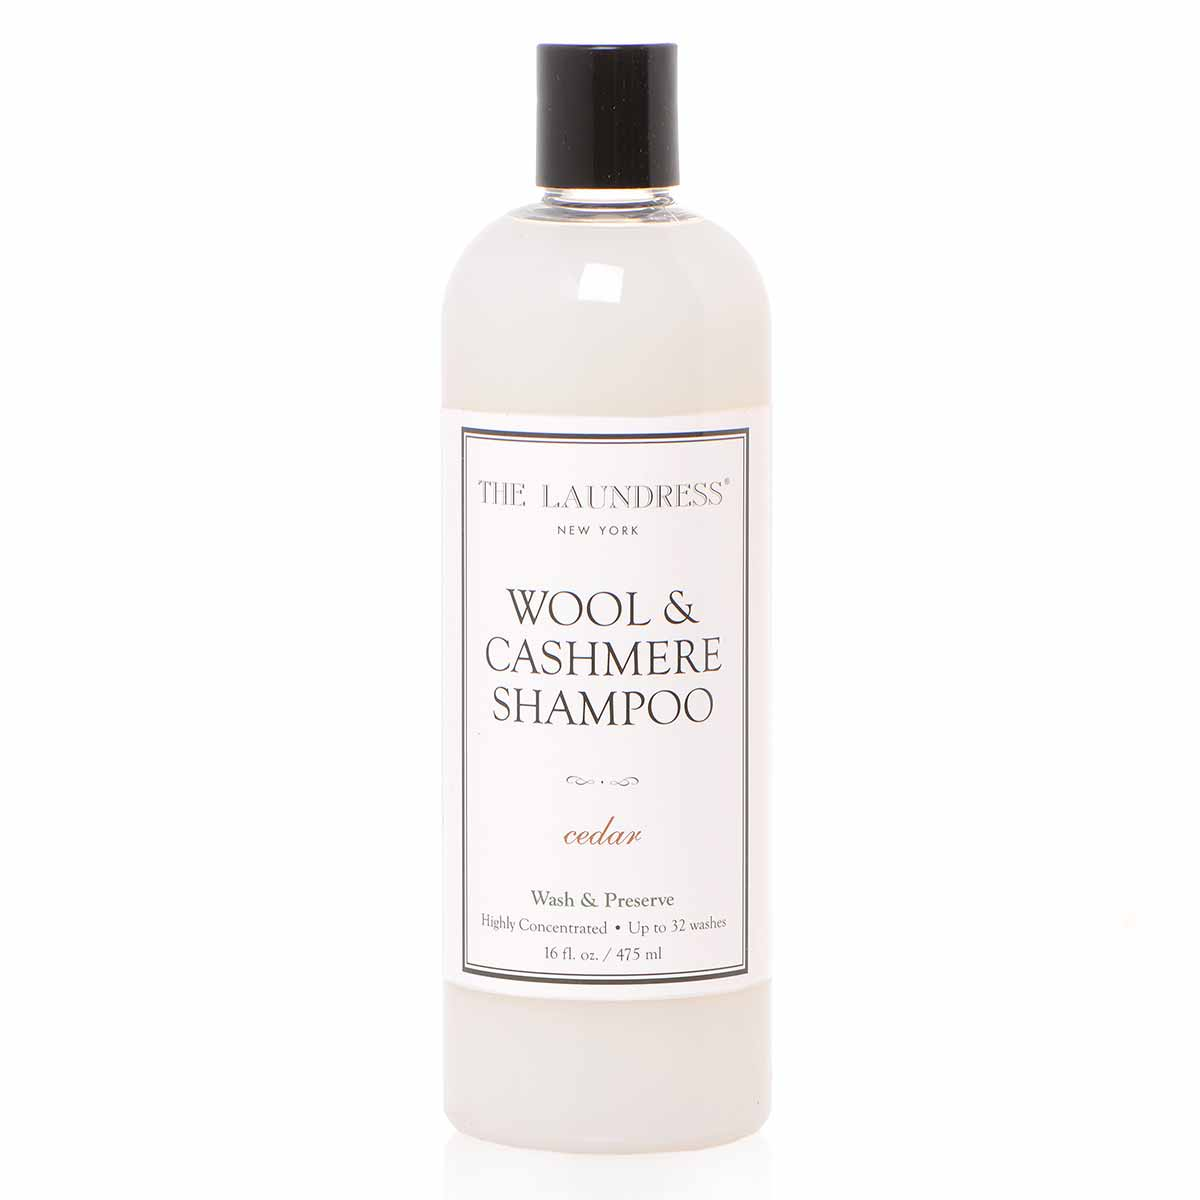 The Laundress Wool & Cashmere Shampoo-Amicale Cashmere